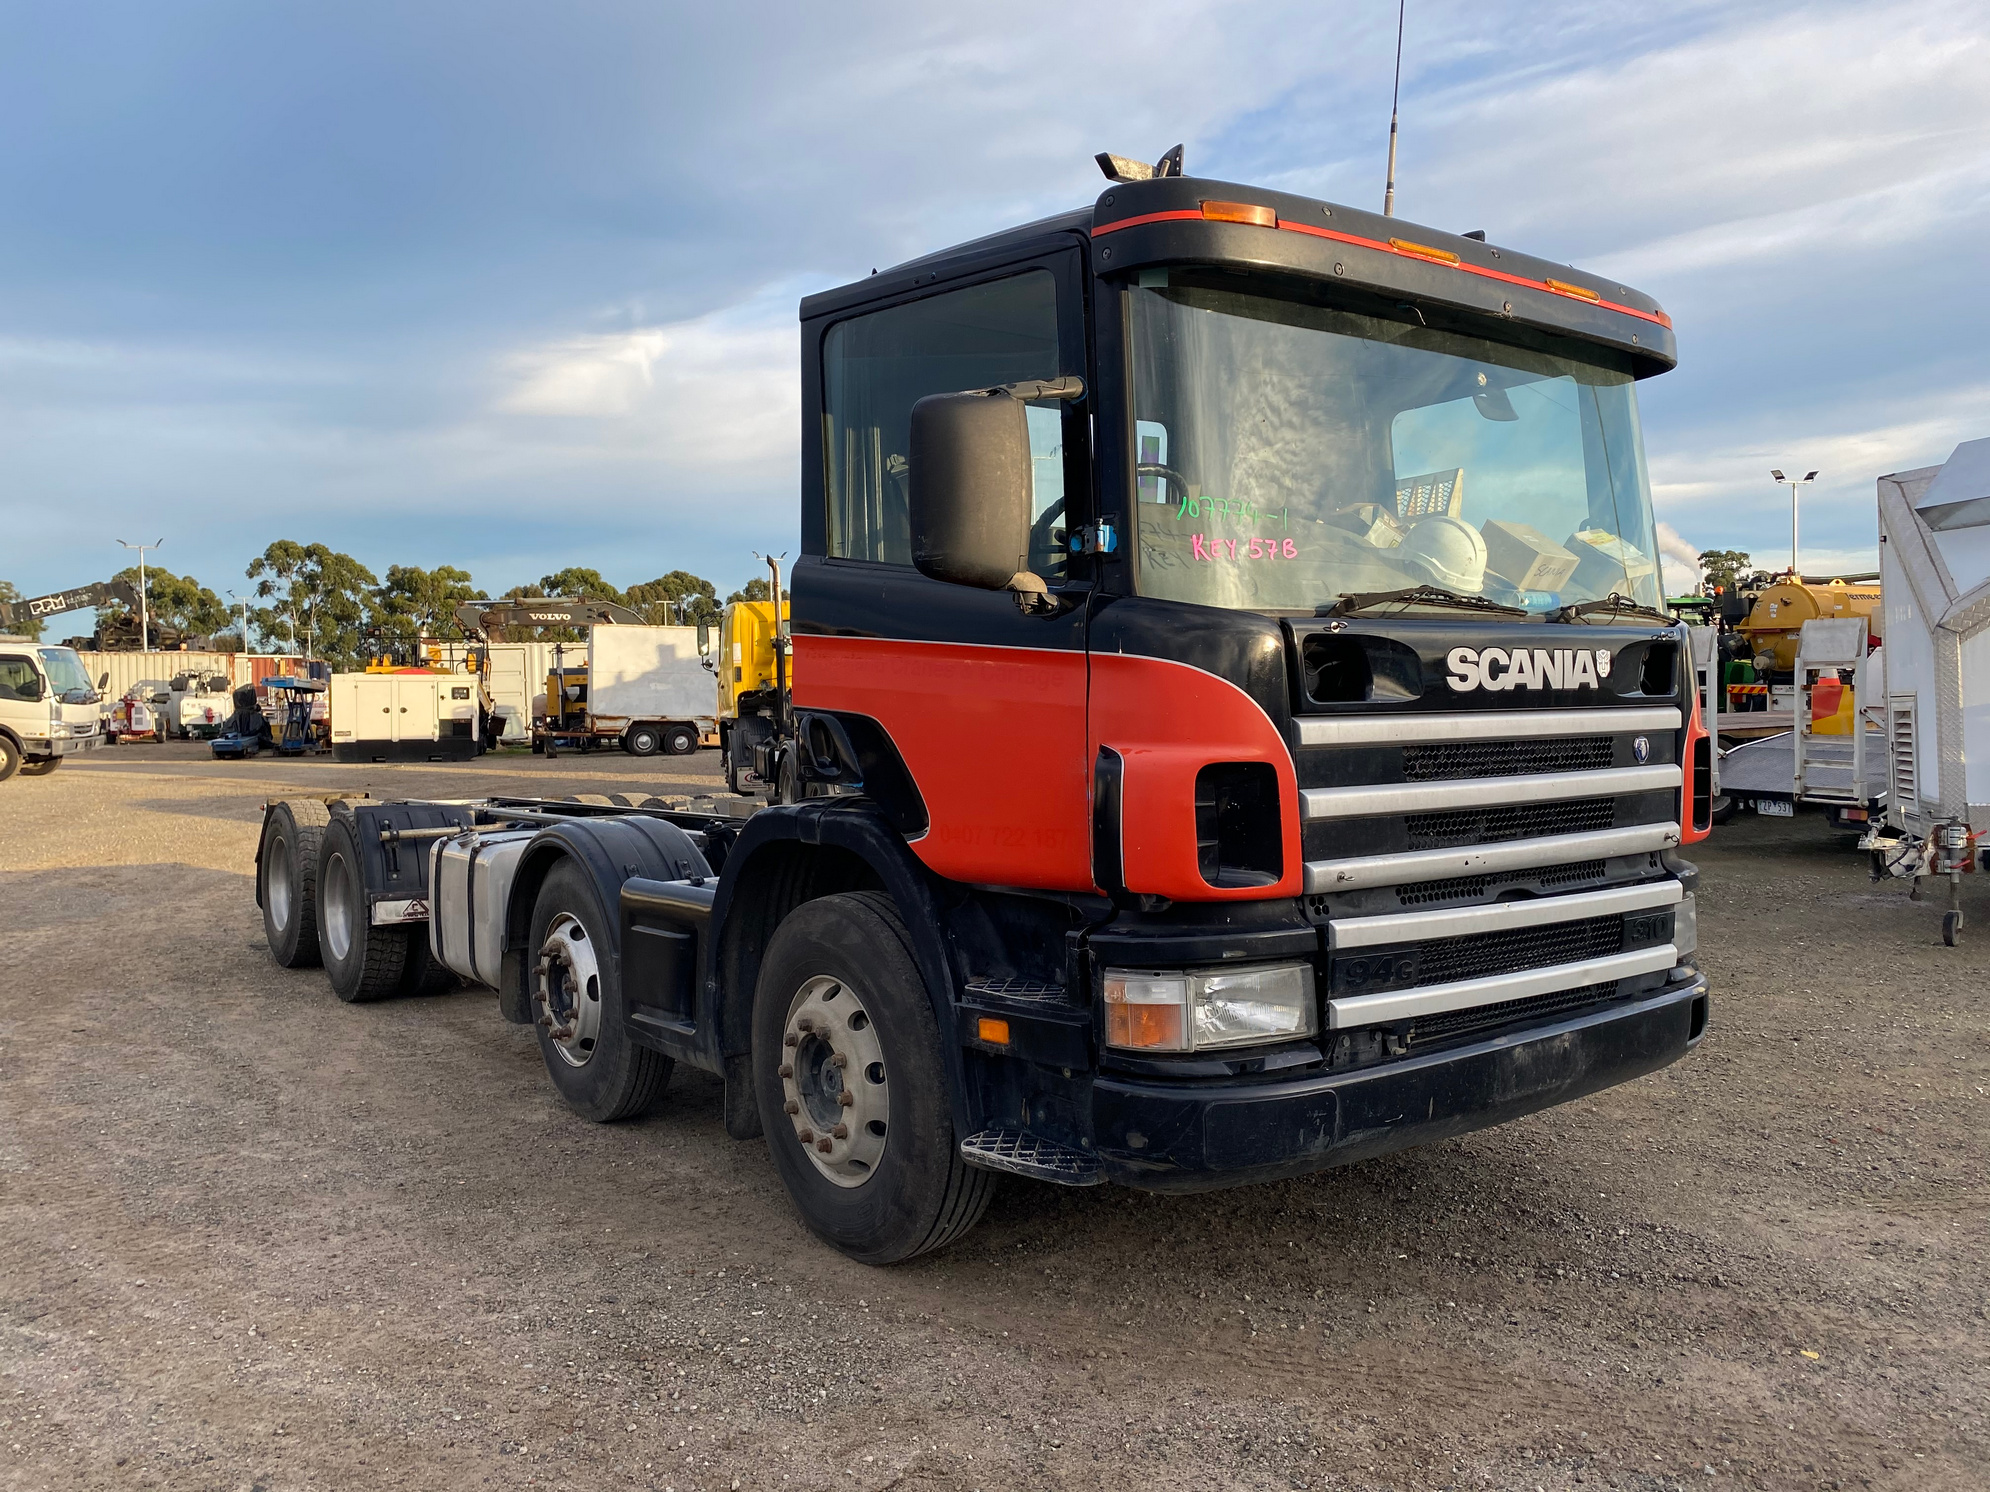 2002 Scania 94G 8 x 4 Cab Chassis Truck